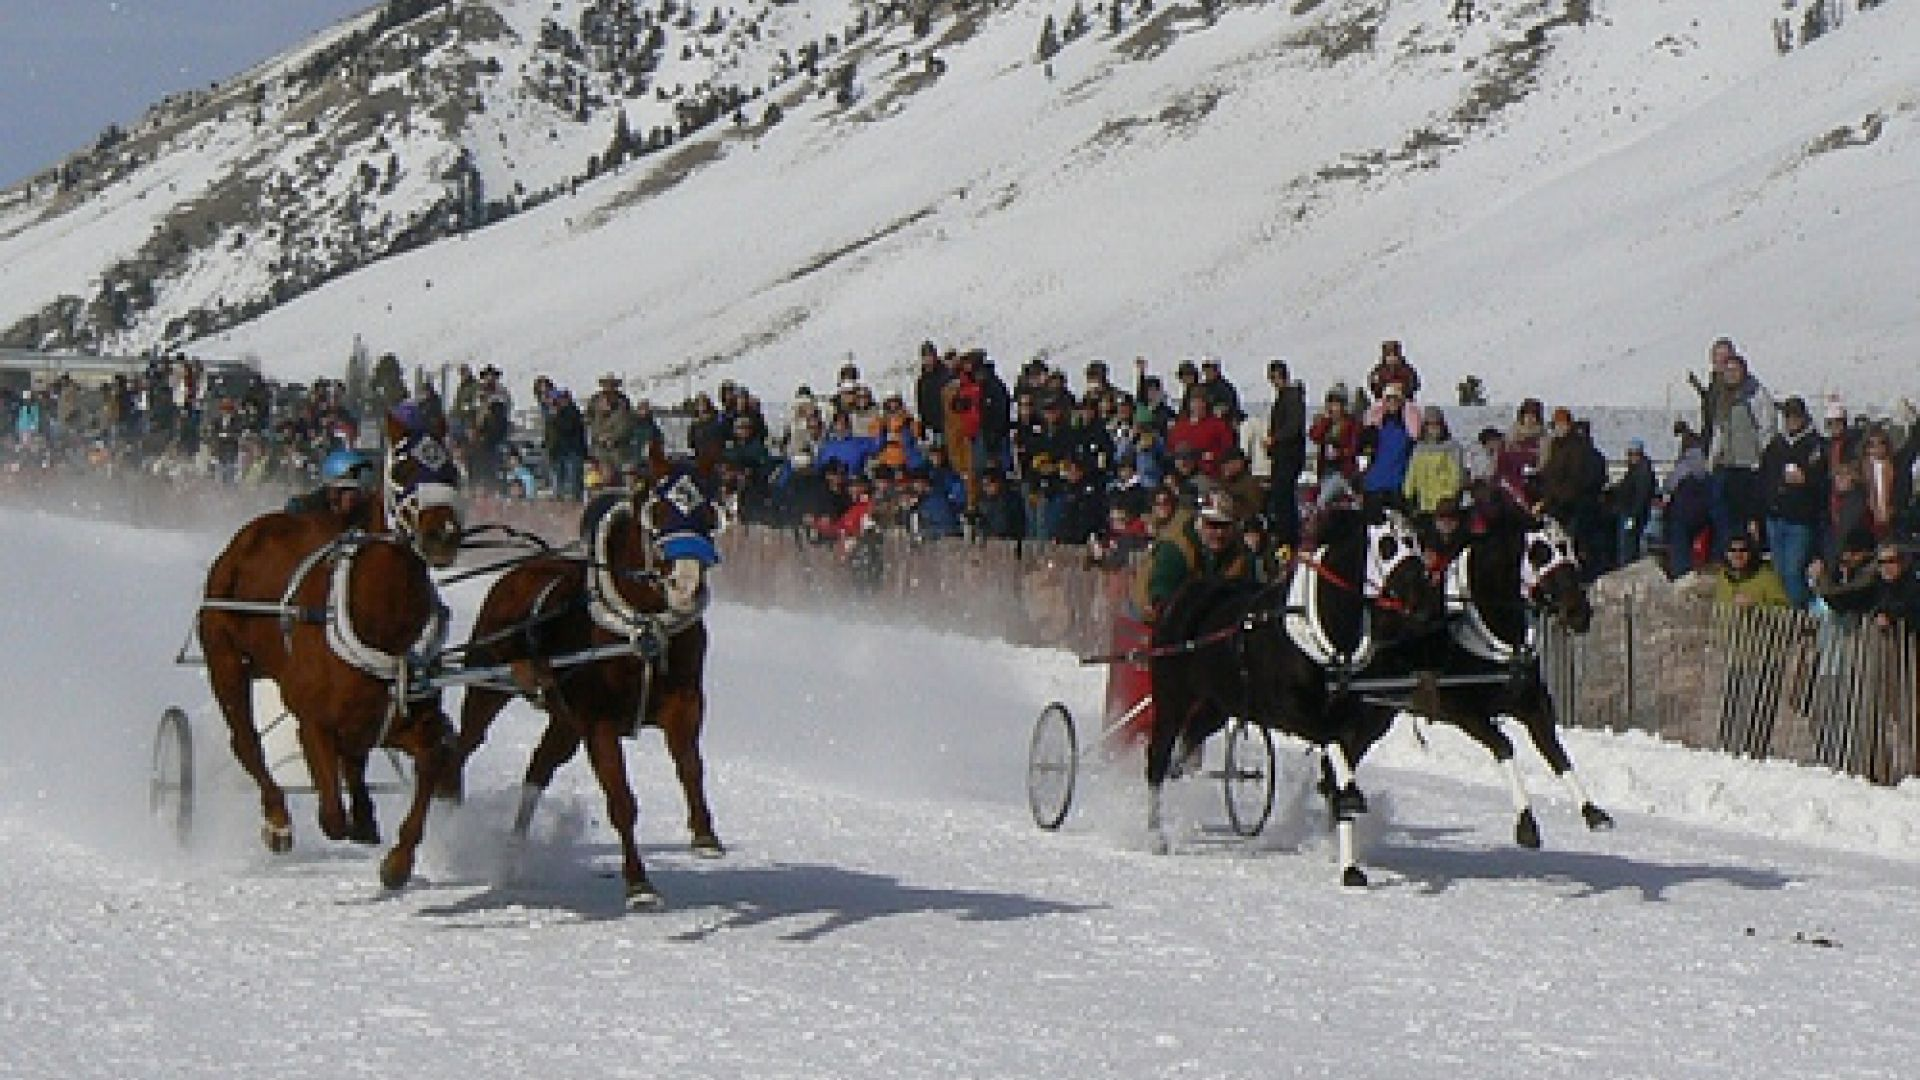 Third Annual Jackson Hole Winterfest Starts This Friday